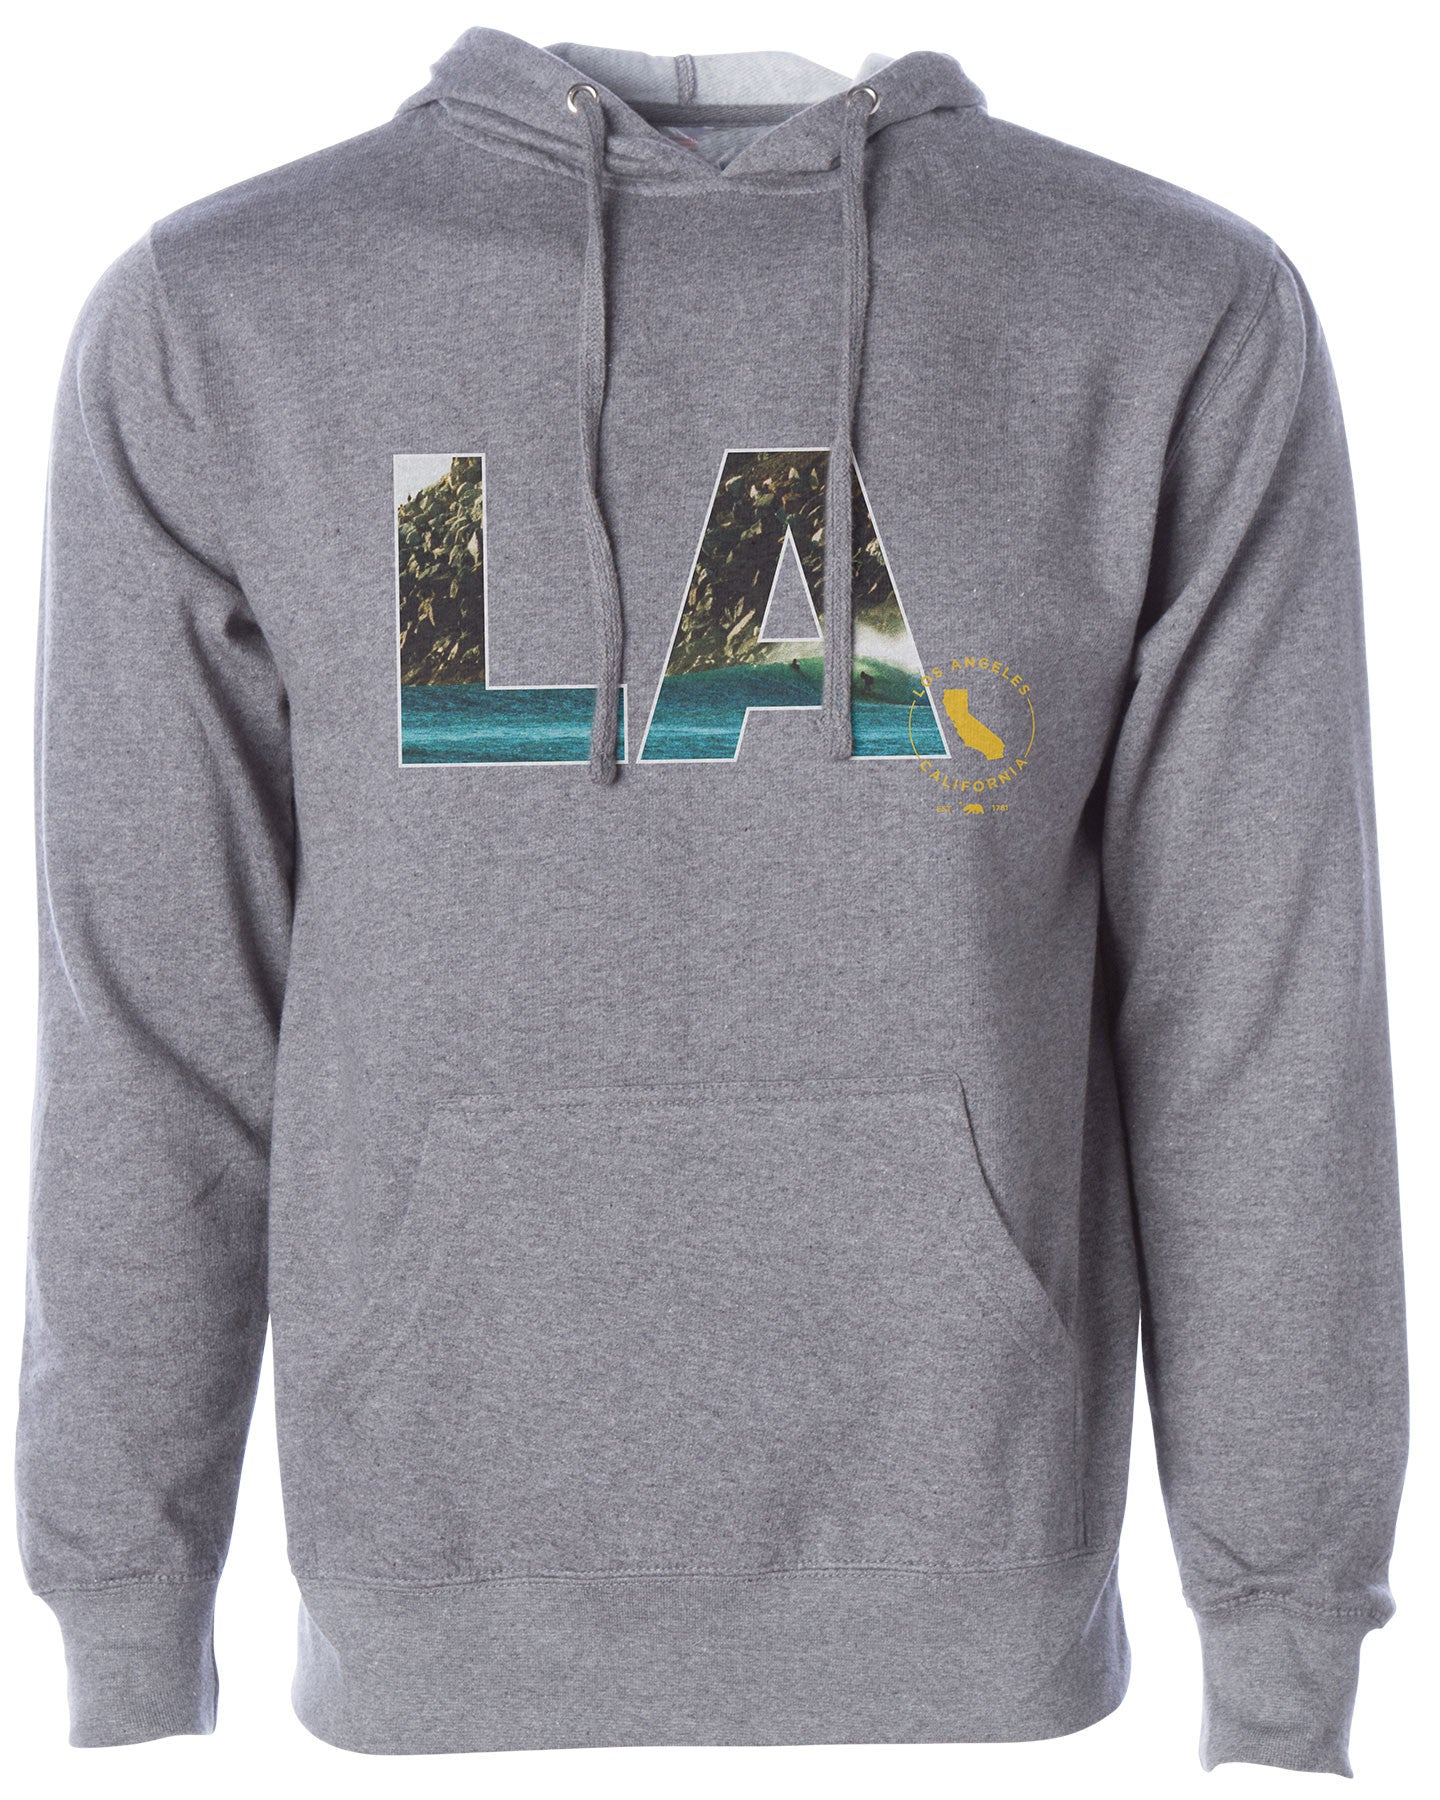 LA SUPERTUBES FLEECE